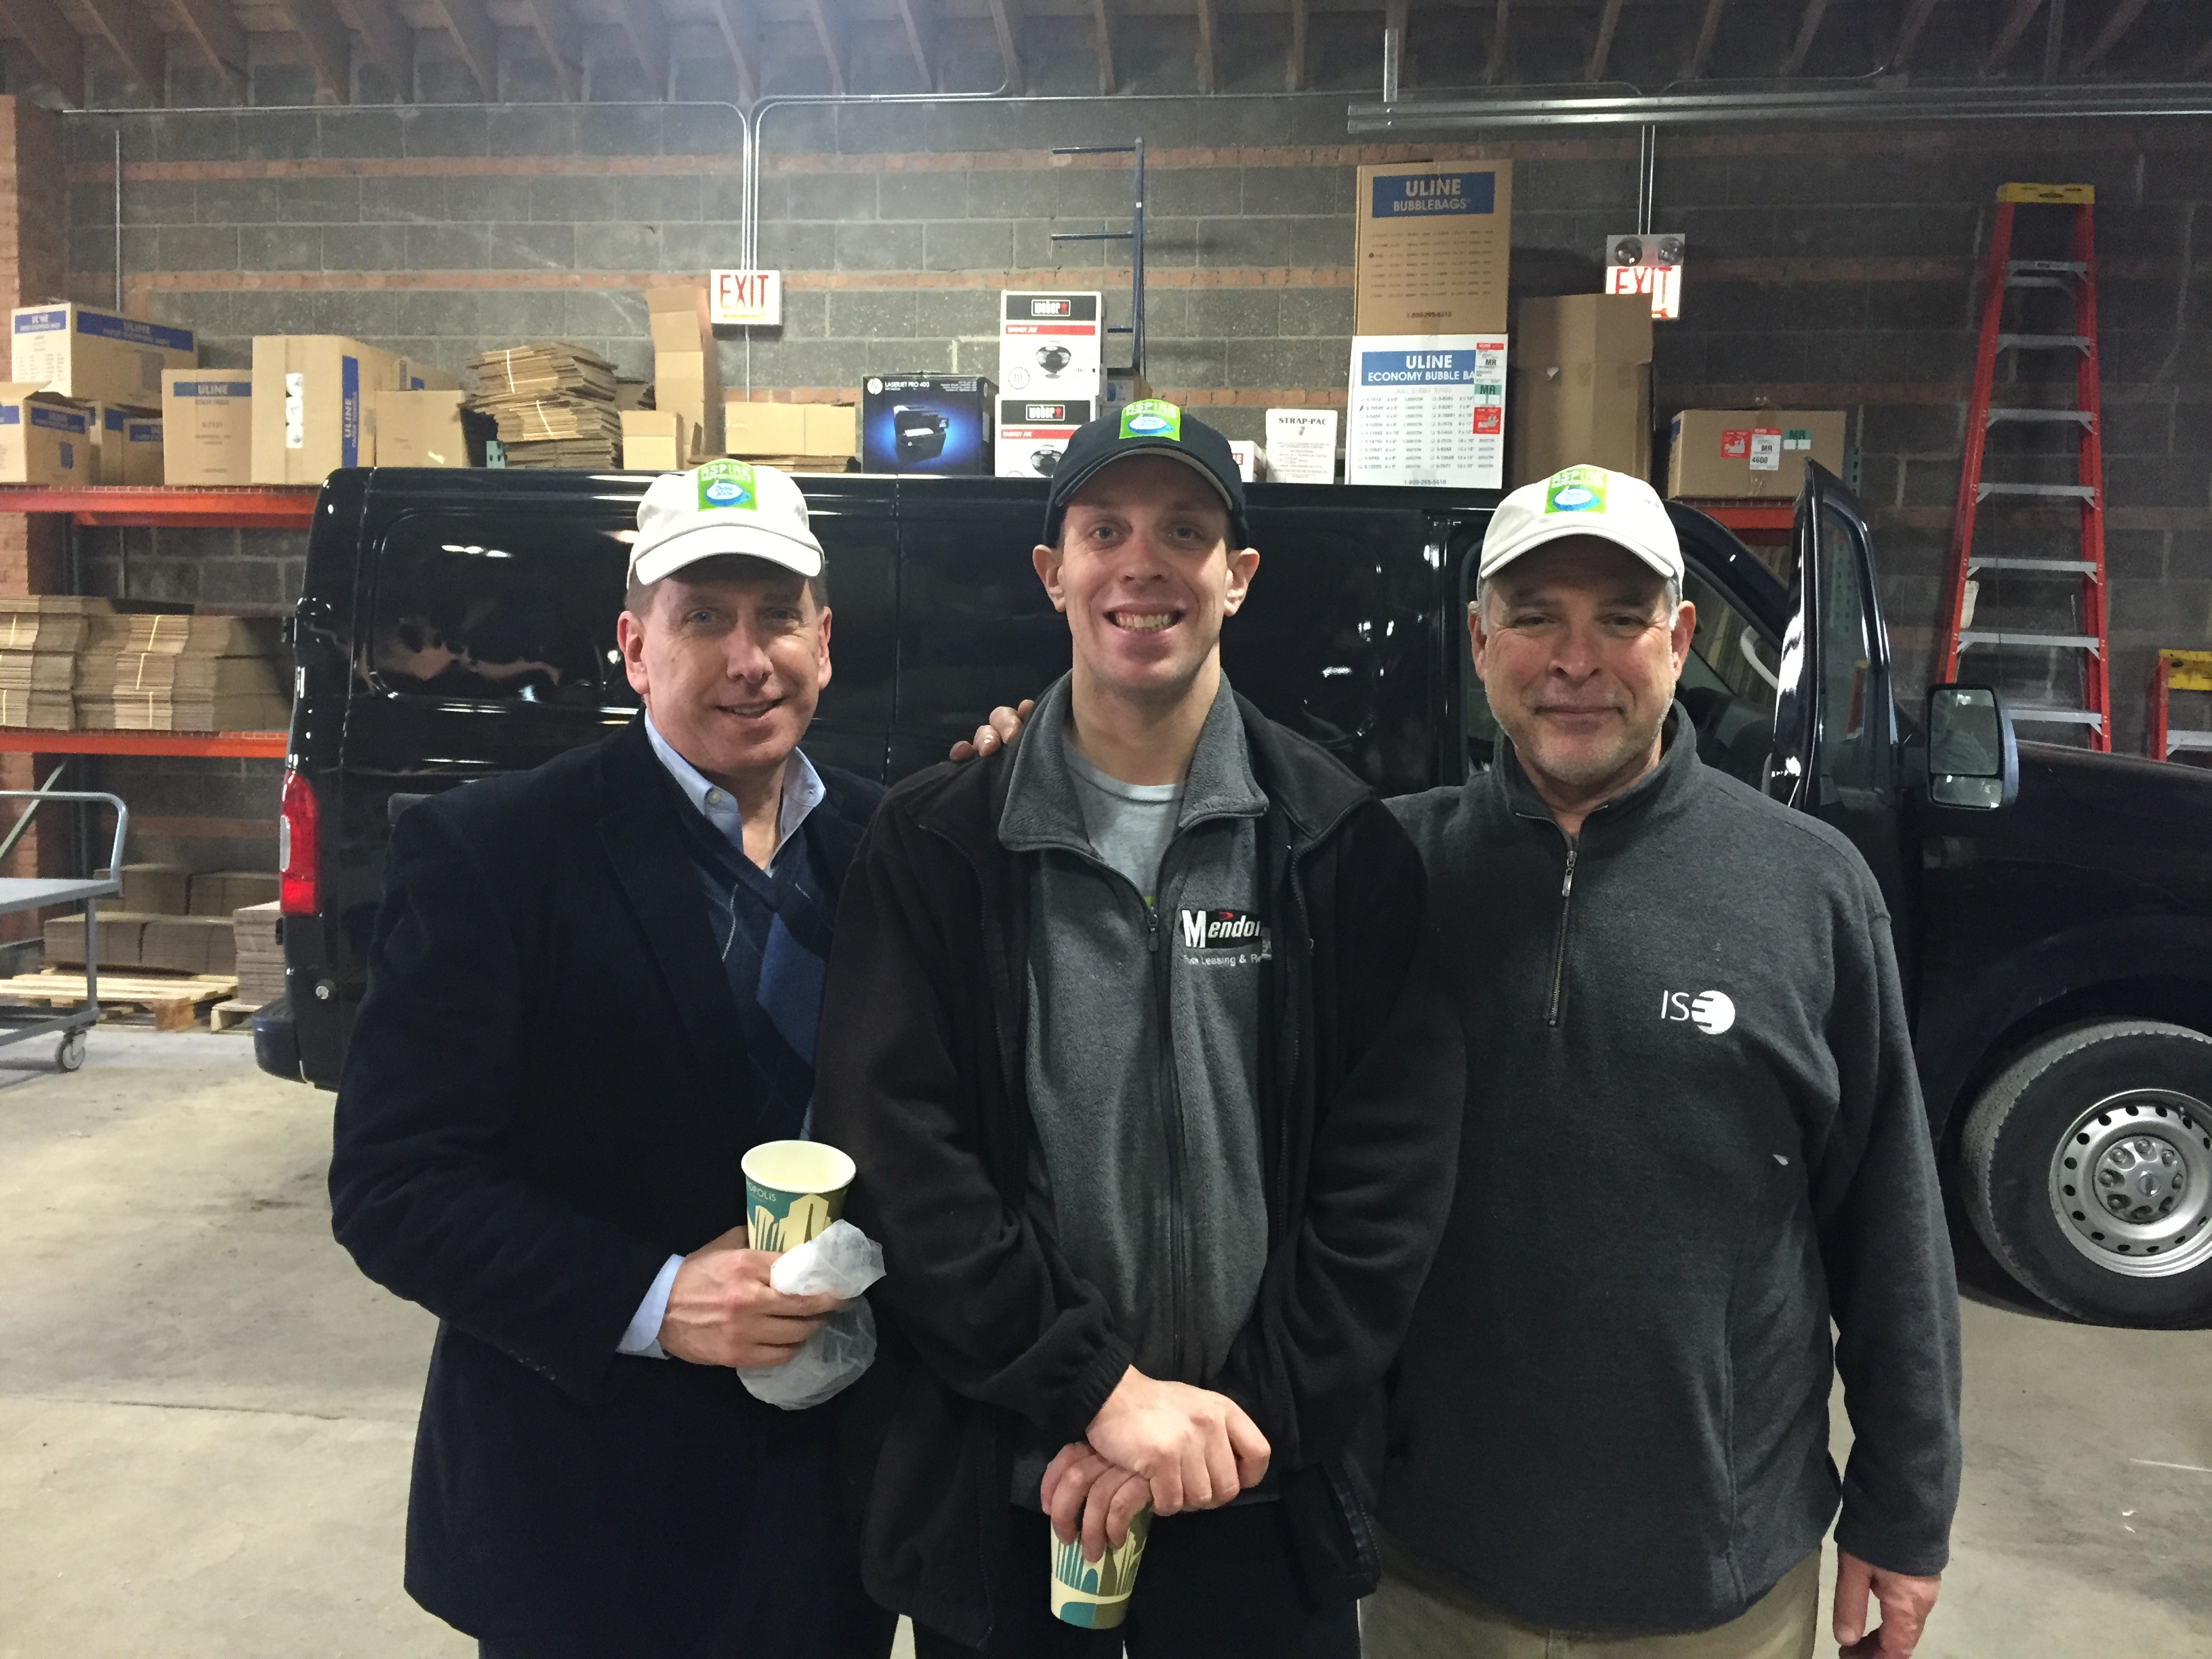 Orrin Huebner with Ben Rankin-Parker who works at Aspire CoffeeWorks, and Jerry Kallas, the Managing Director of Aspire CoffeeWorks, at Metropolis in Avondale.